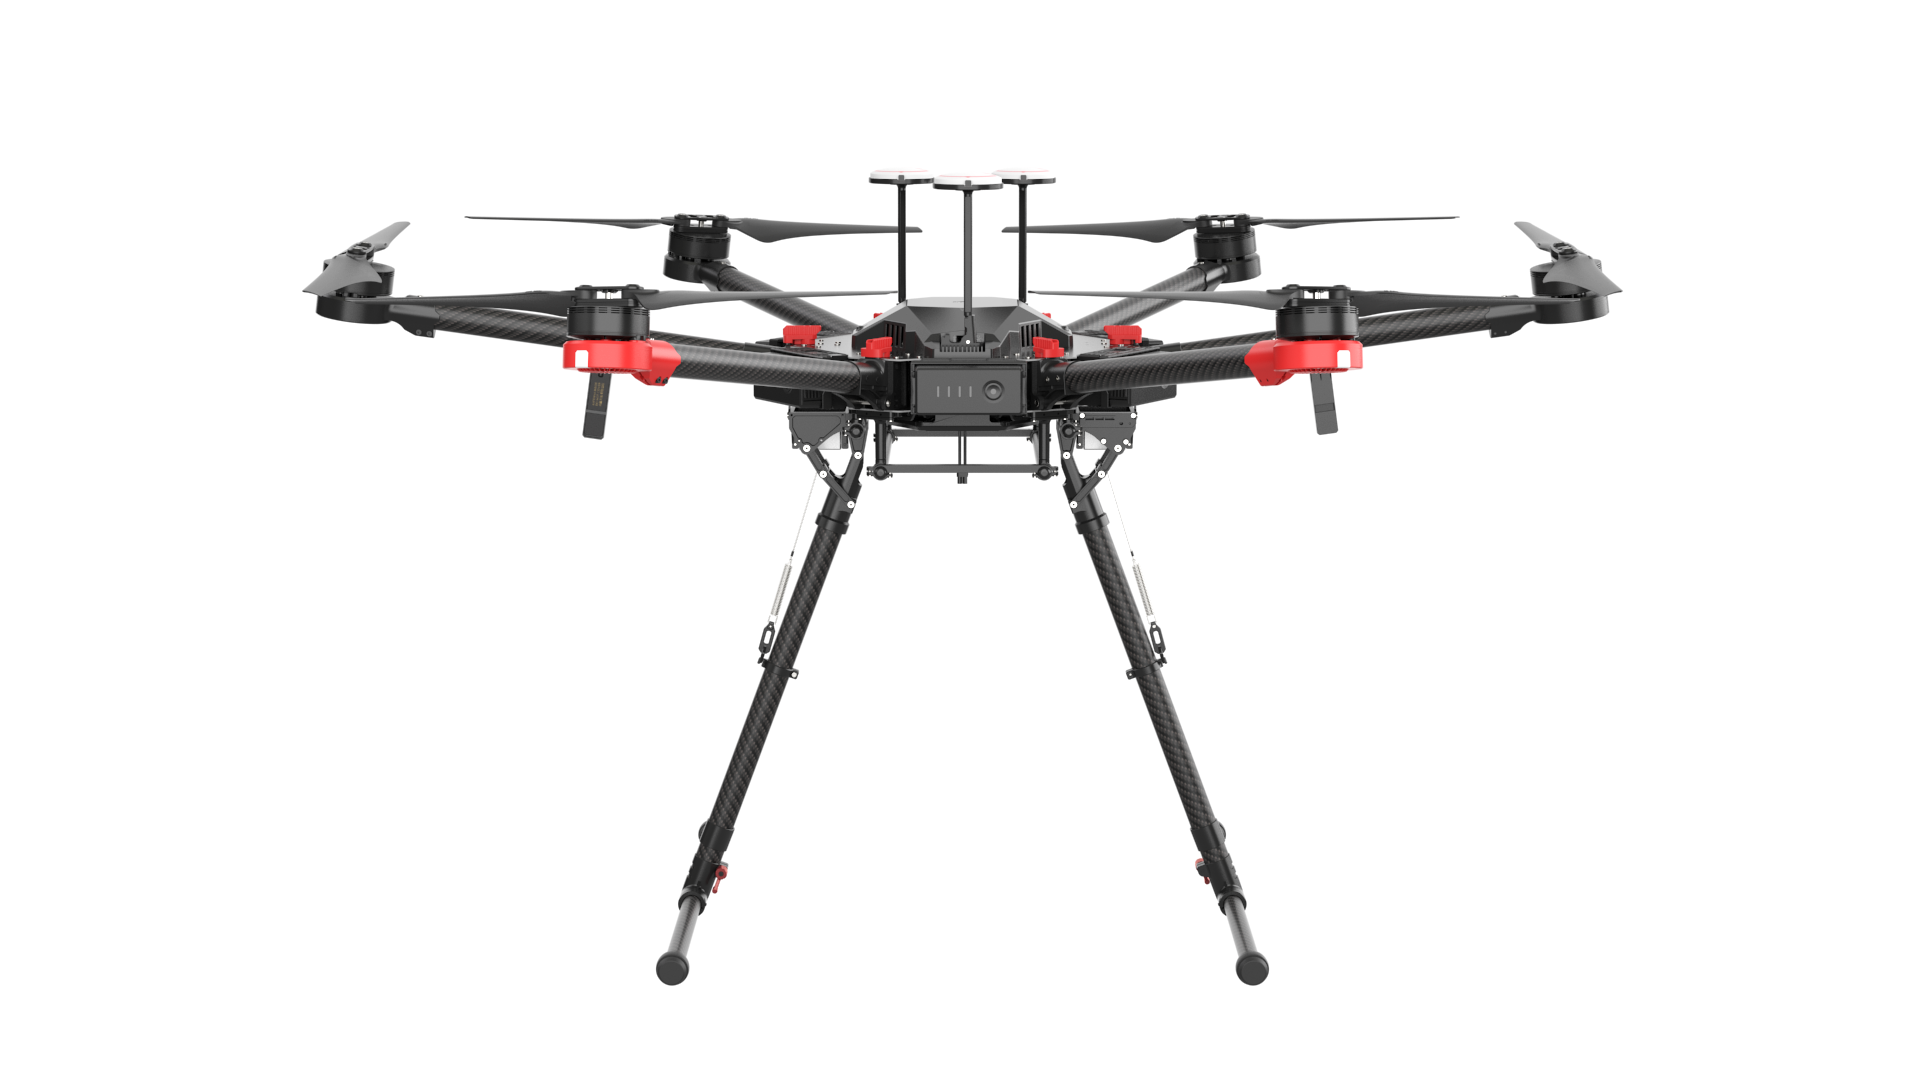 MATRICE 600 PRO   Powerful aerial platform built for industrial applications. Supports third-party sensors, cinematic cameras and full-frame camera systems.